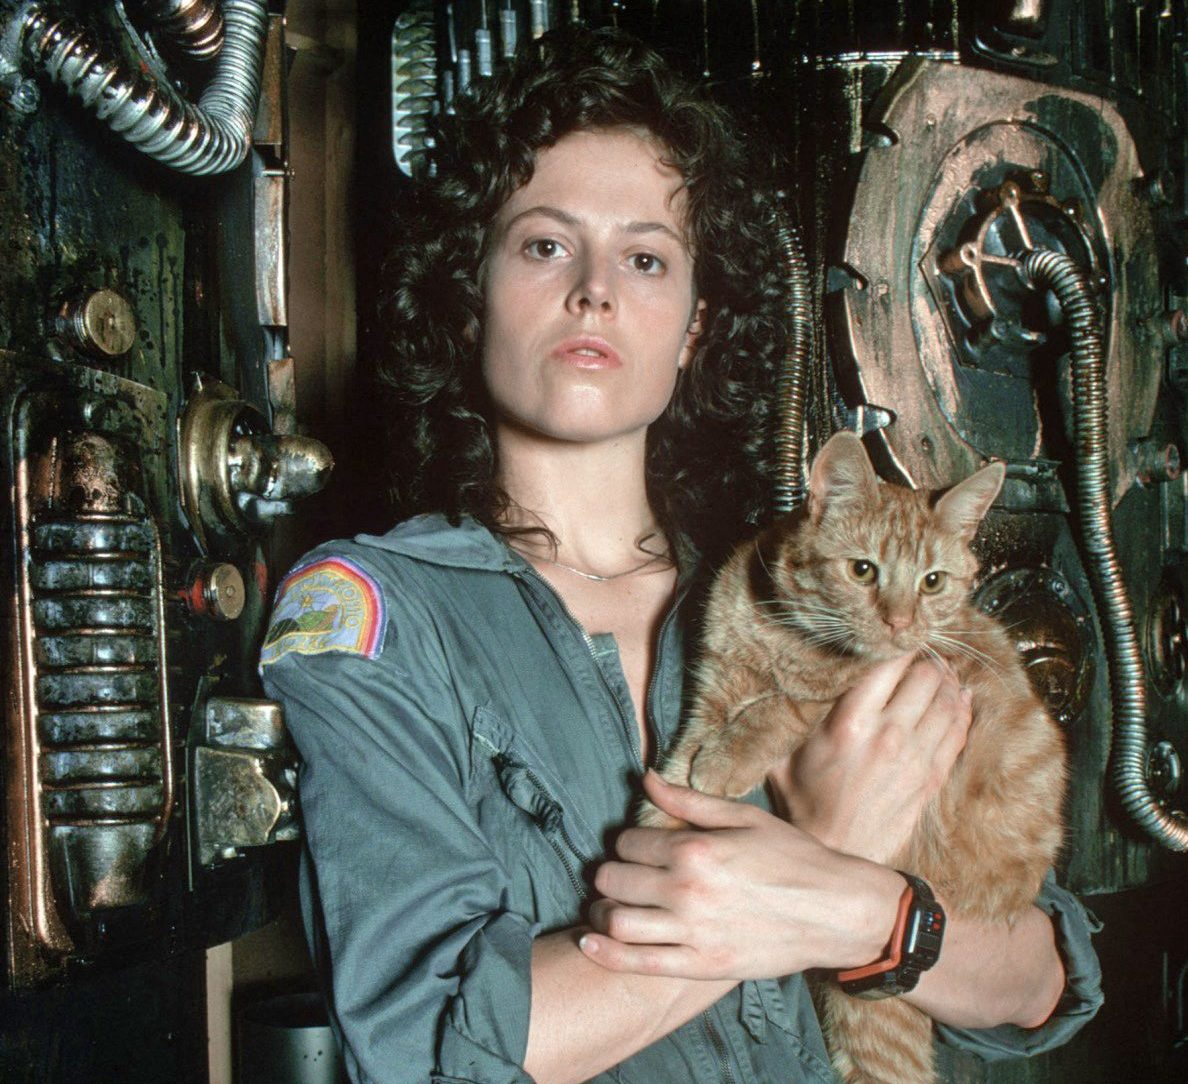 4bb9eccfd3cdc7fd152674e7b7b25494 e1609846635816 20 Things You Probably Didn't Know About Sigourney Weaver